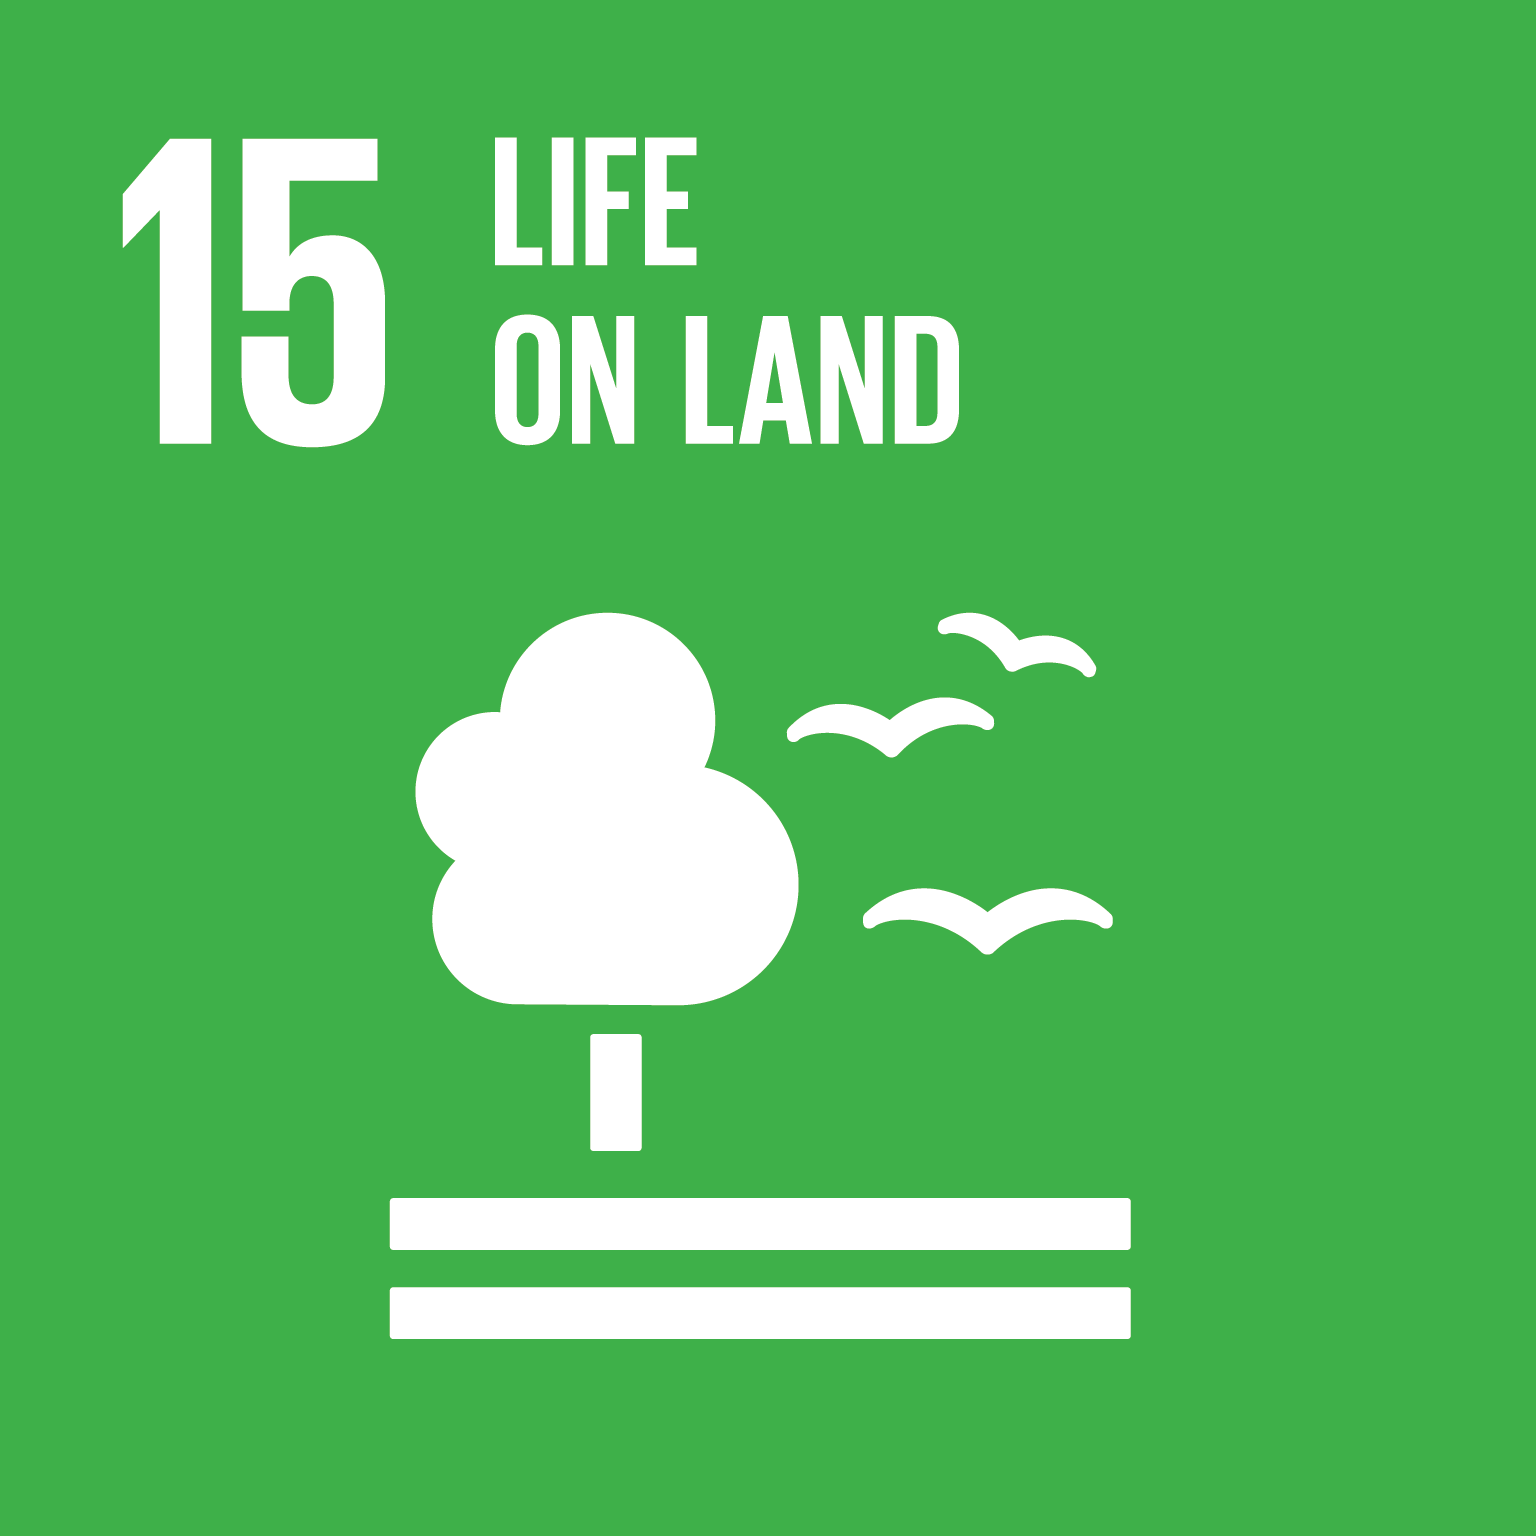 Life on Land - Sustainably manage forests, combat desertification, halt and reverse land degradation, halt biodiversity loss